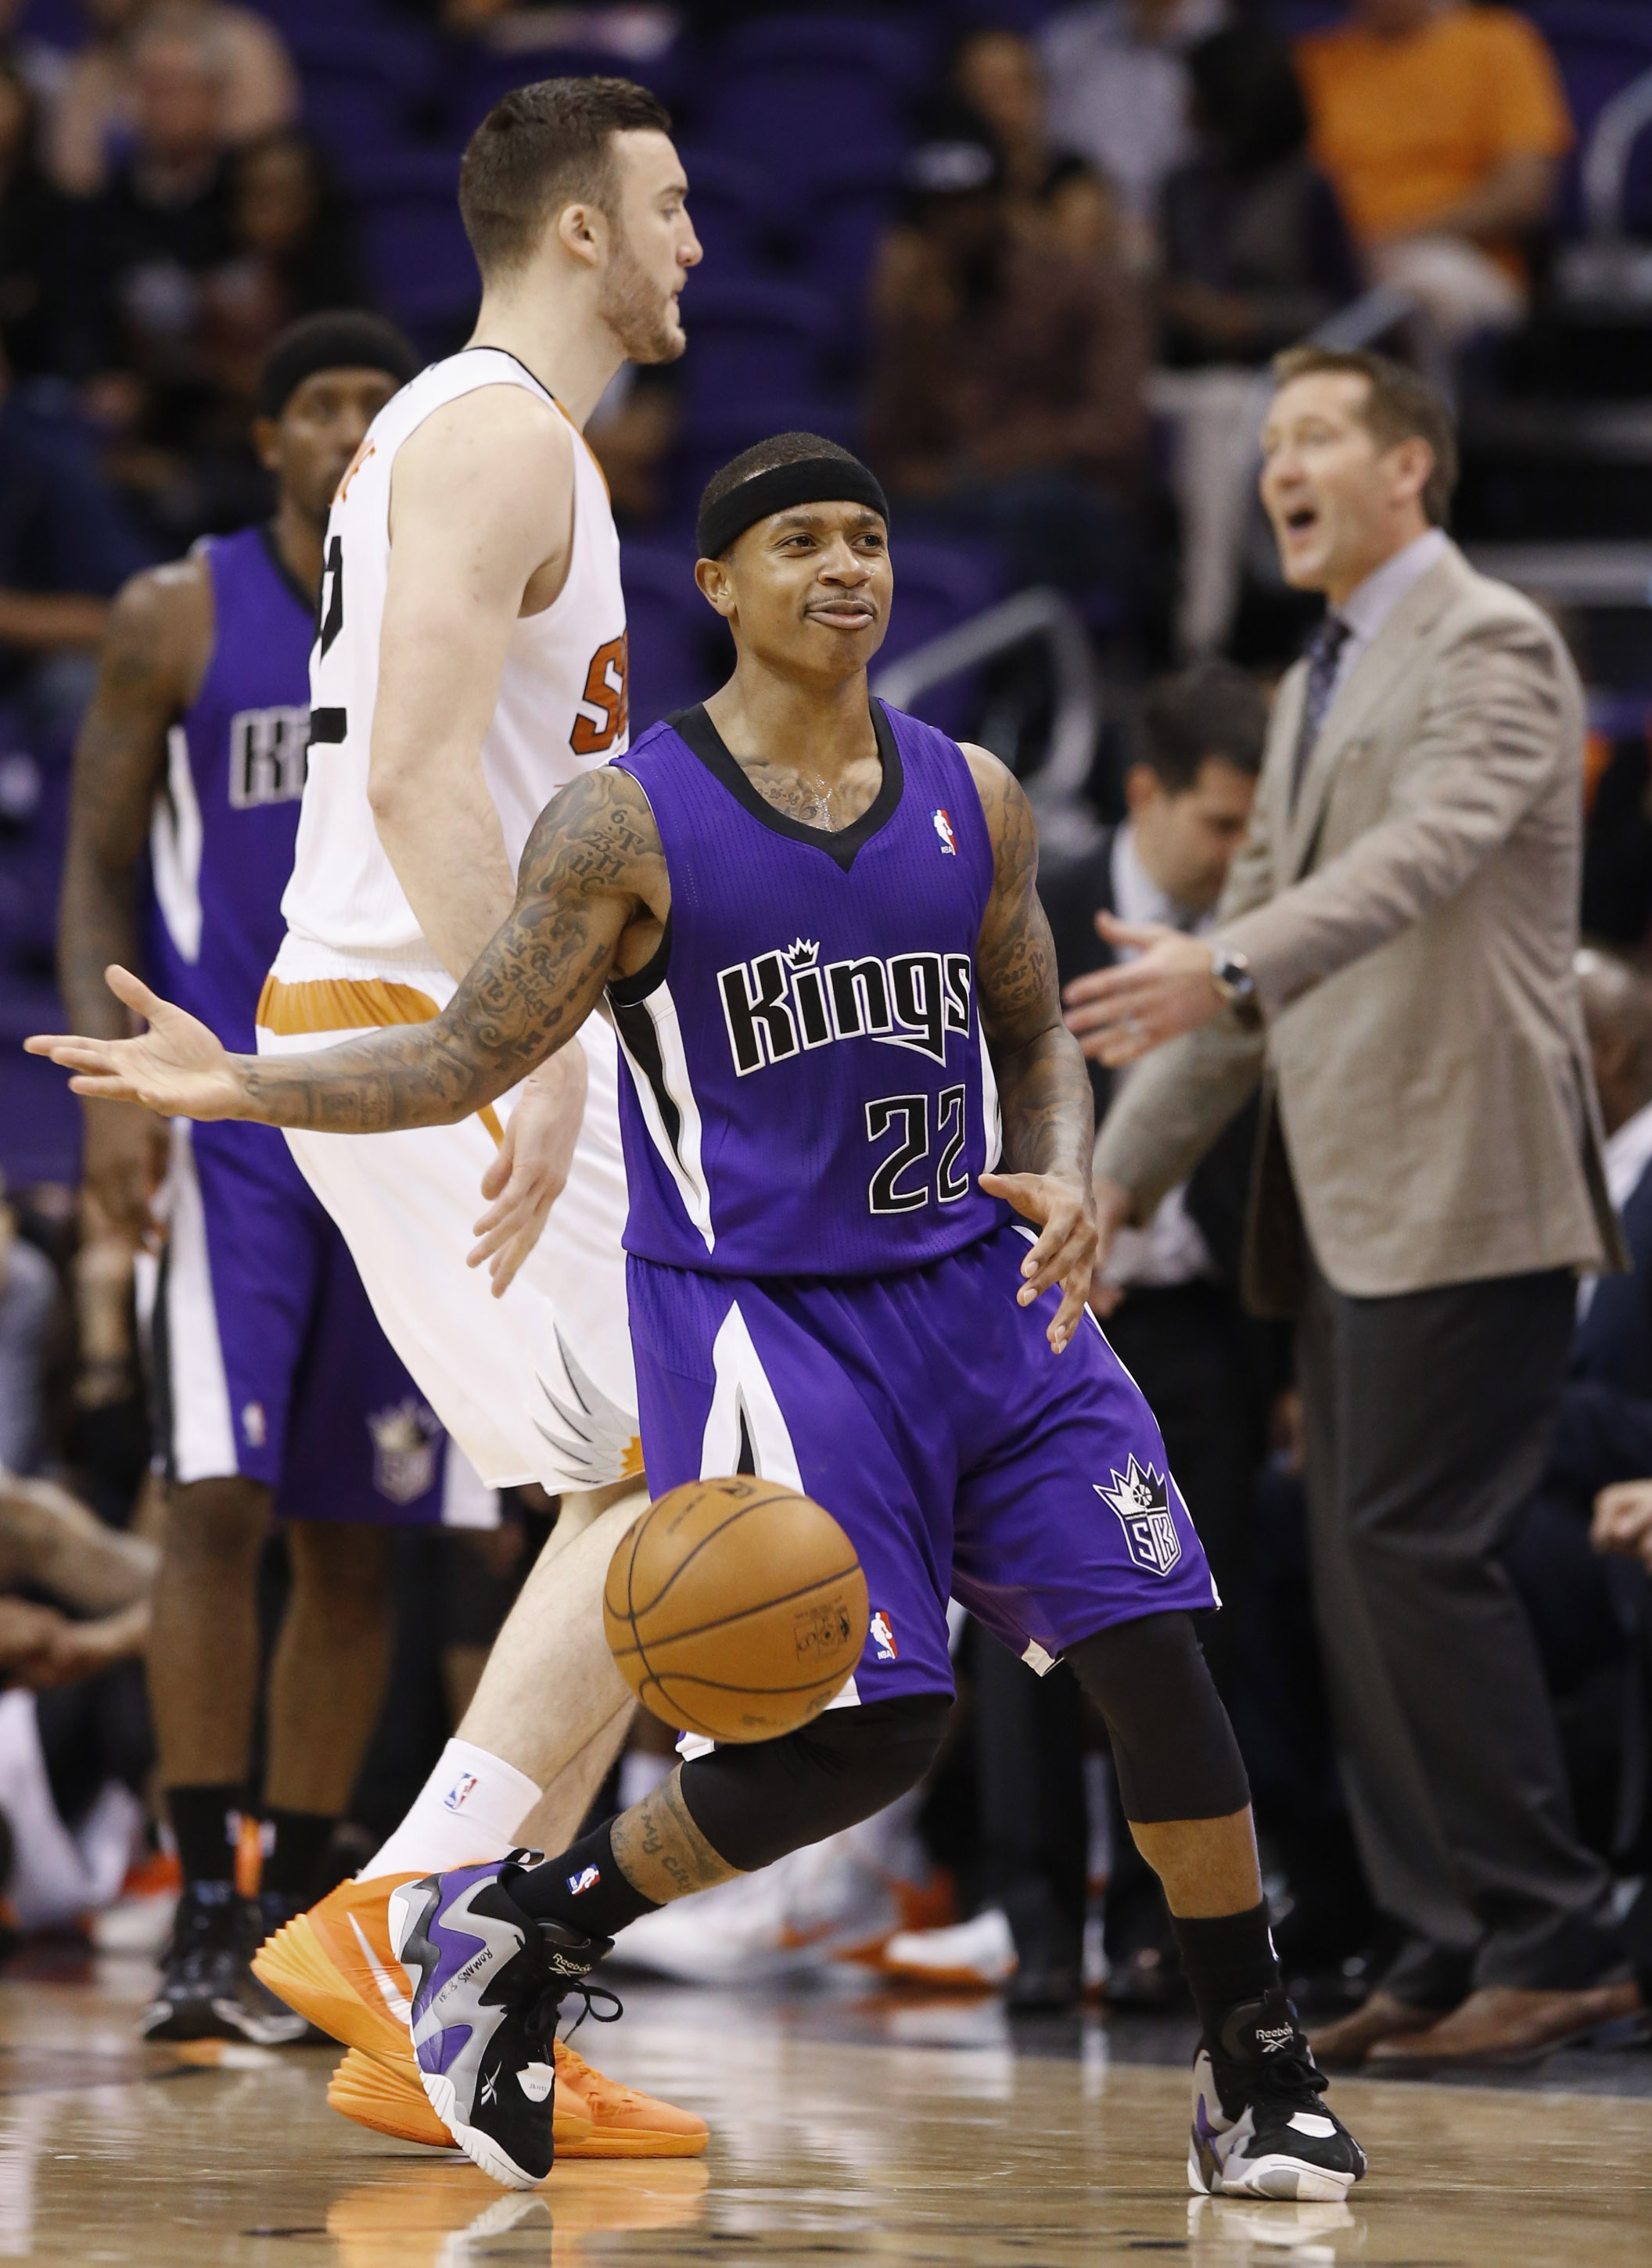 Sacramento Kings' Isaiah Thomas (22) gestures after being fouled by Phoenix Suns' Miles Plumlee, left, as Suns head coach Jeff Hornacek, right, shouts at his players during the second half of an NBA basketball game Wednesday, Nov. 20, 2013, in Phoenix.  The Kings defeated the Suns 113-106